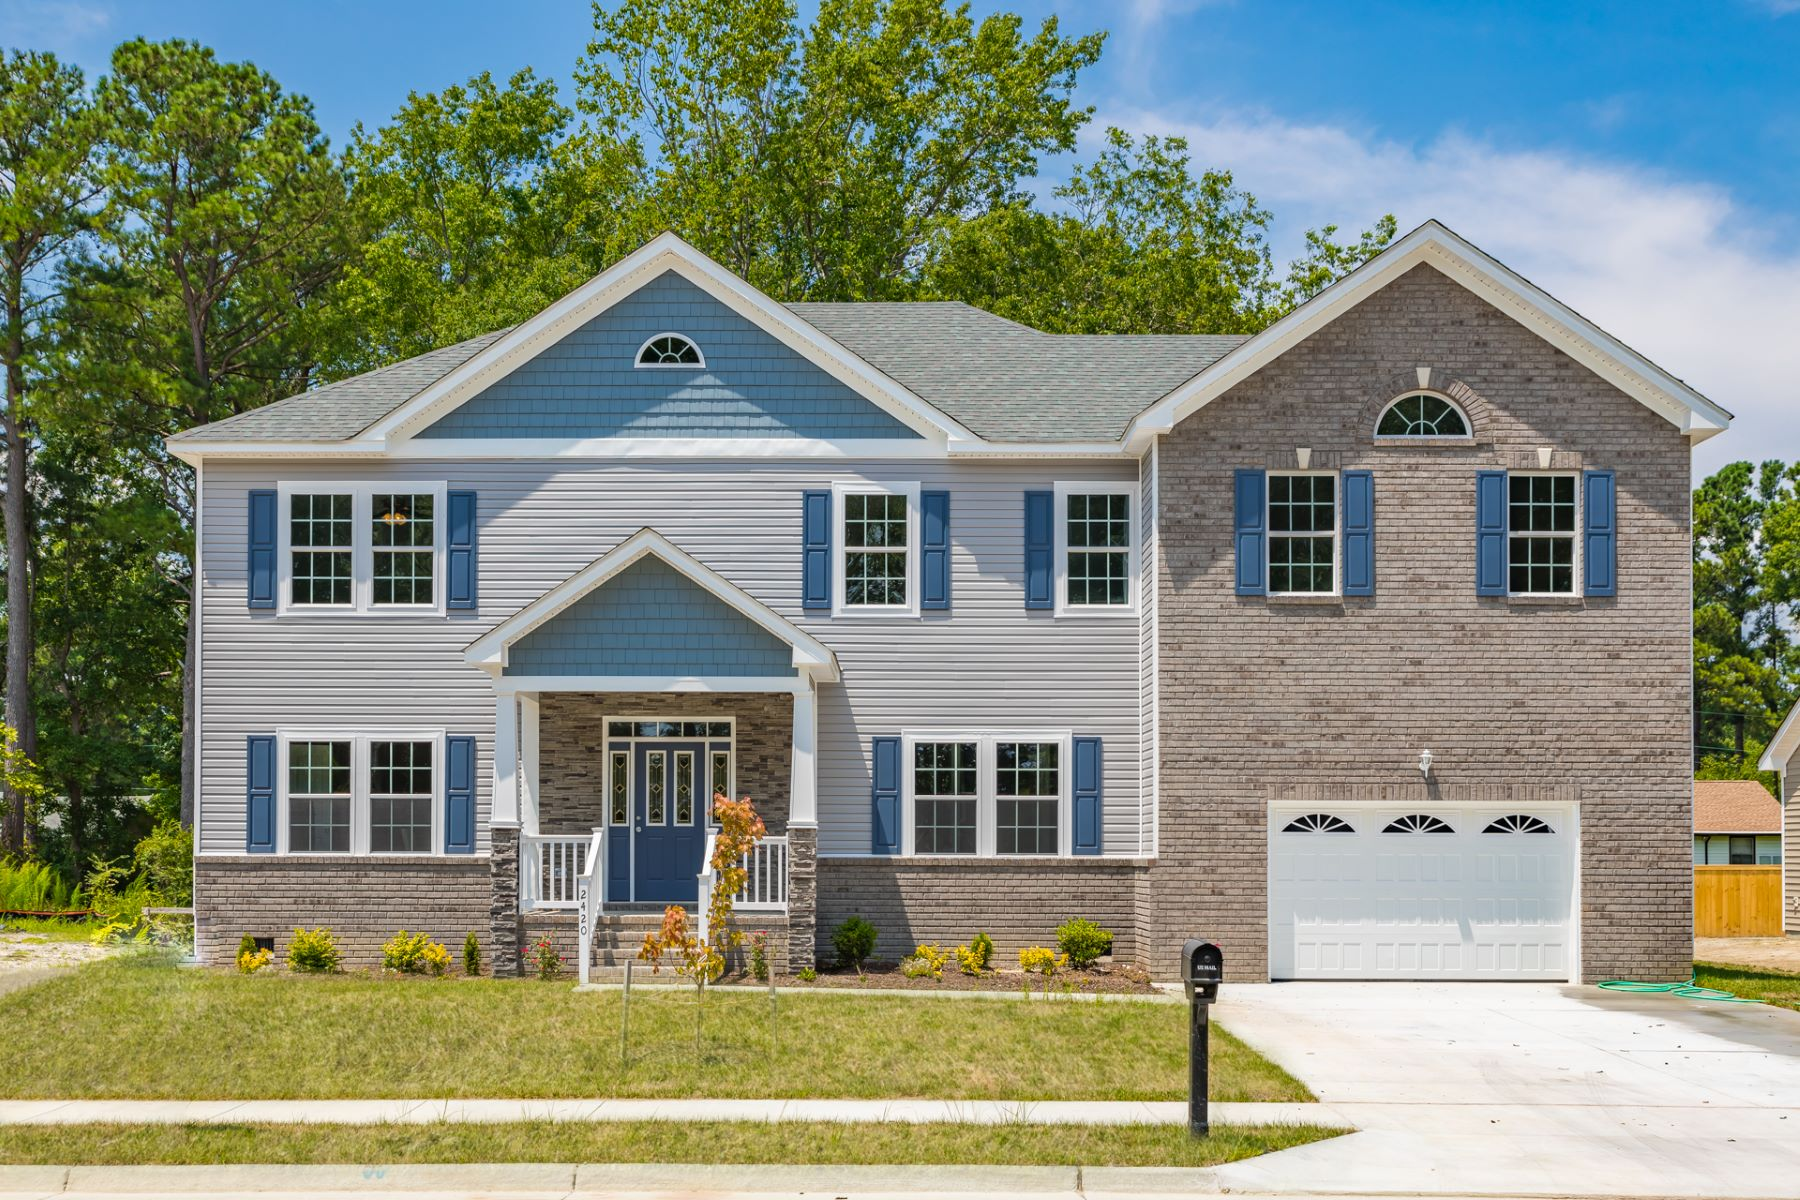 Single Family Homes for Active at DRUM CREEK FARMS 2420 Mandolin Court Chesapeake, Virginia 23321 United States